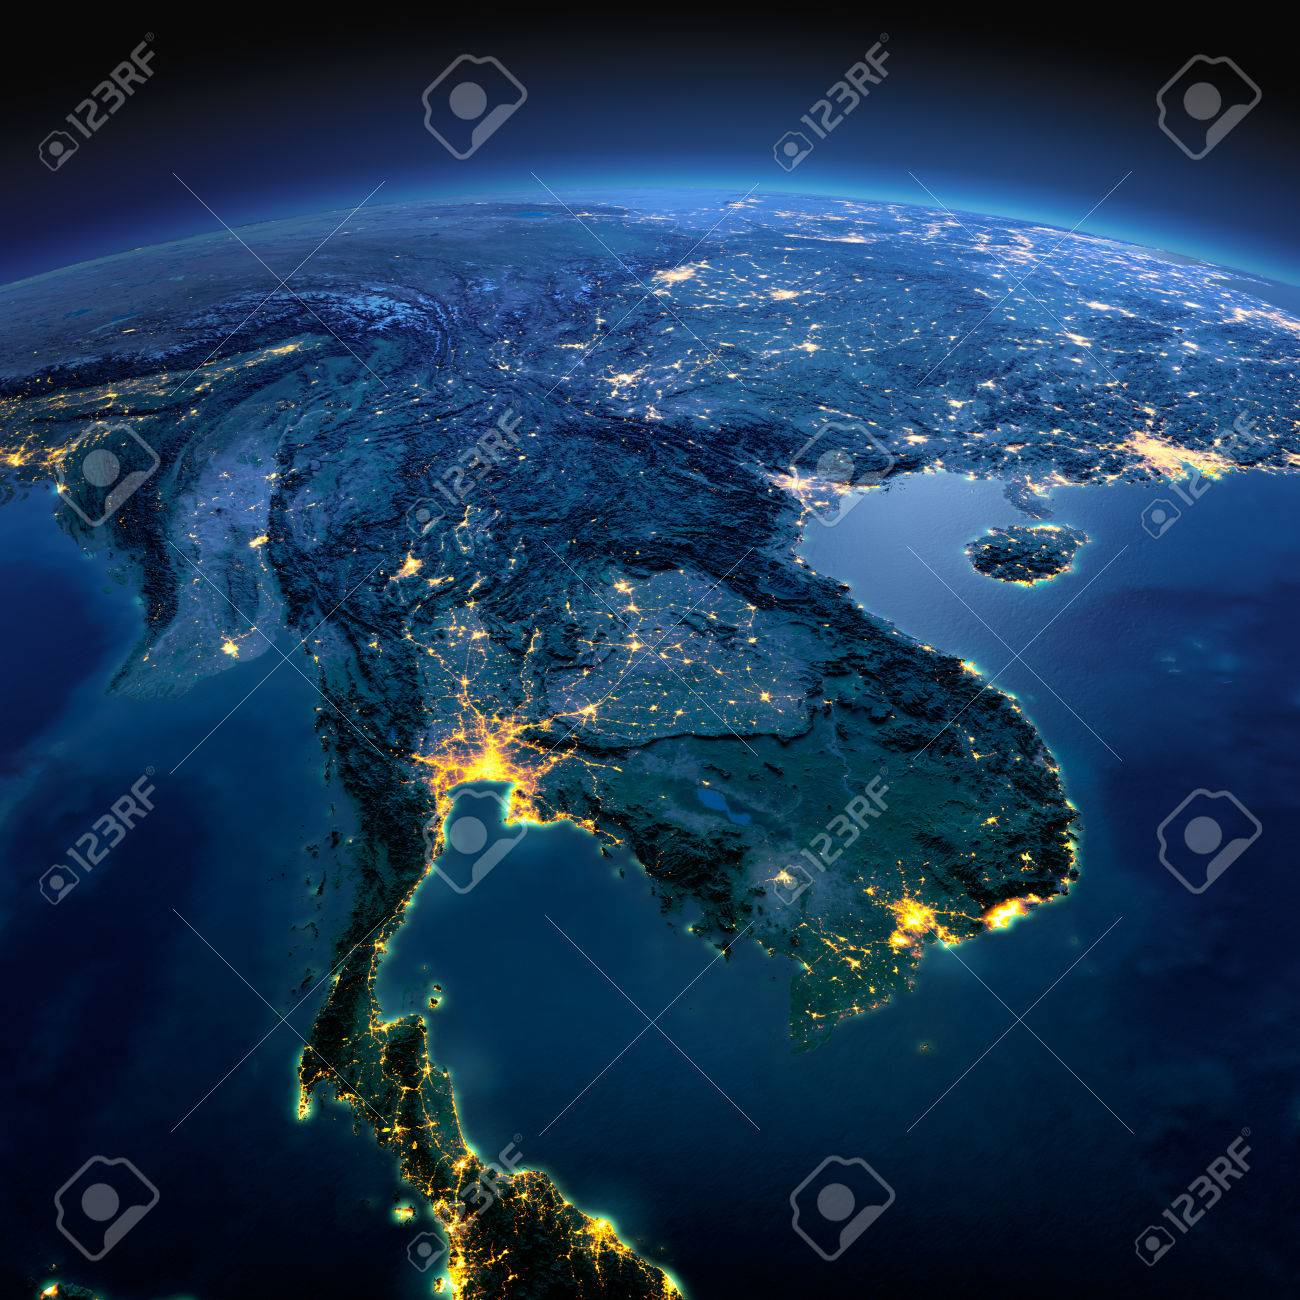 Night planet Earth with precise detailed relief and city lights illuminated by moonlight. Indochina peninsula. Elements of this image furnished by NASA - 50372682